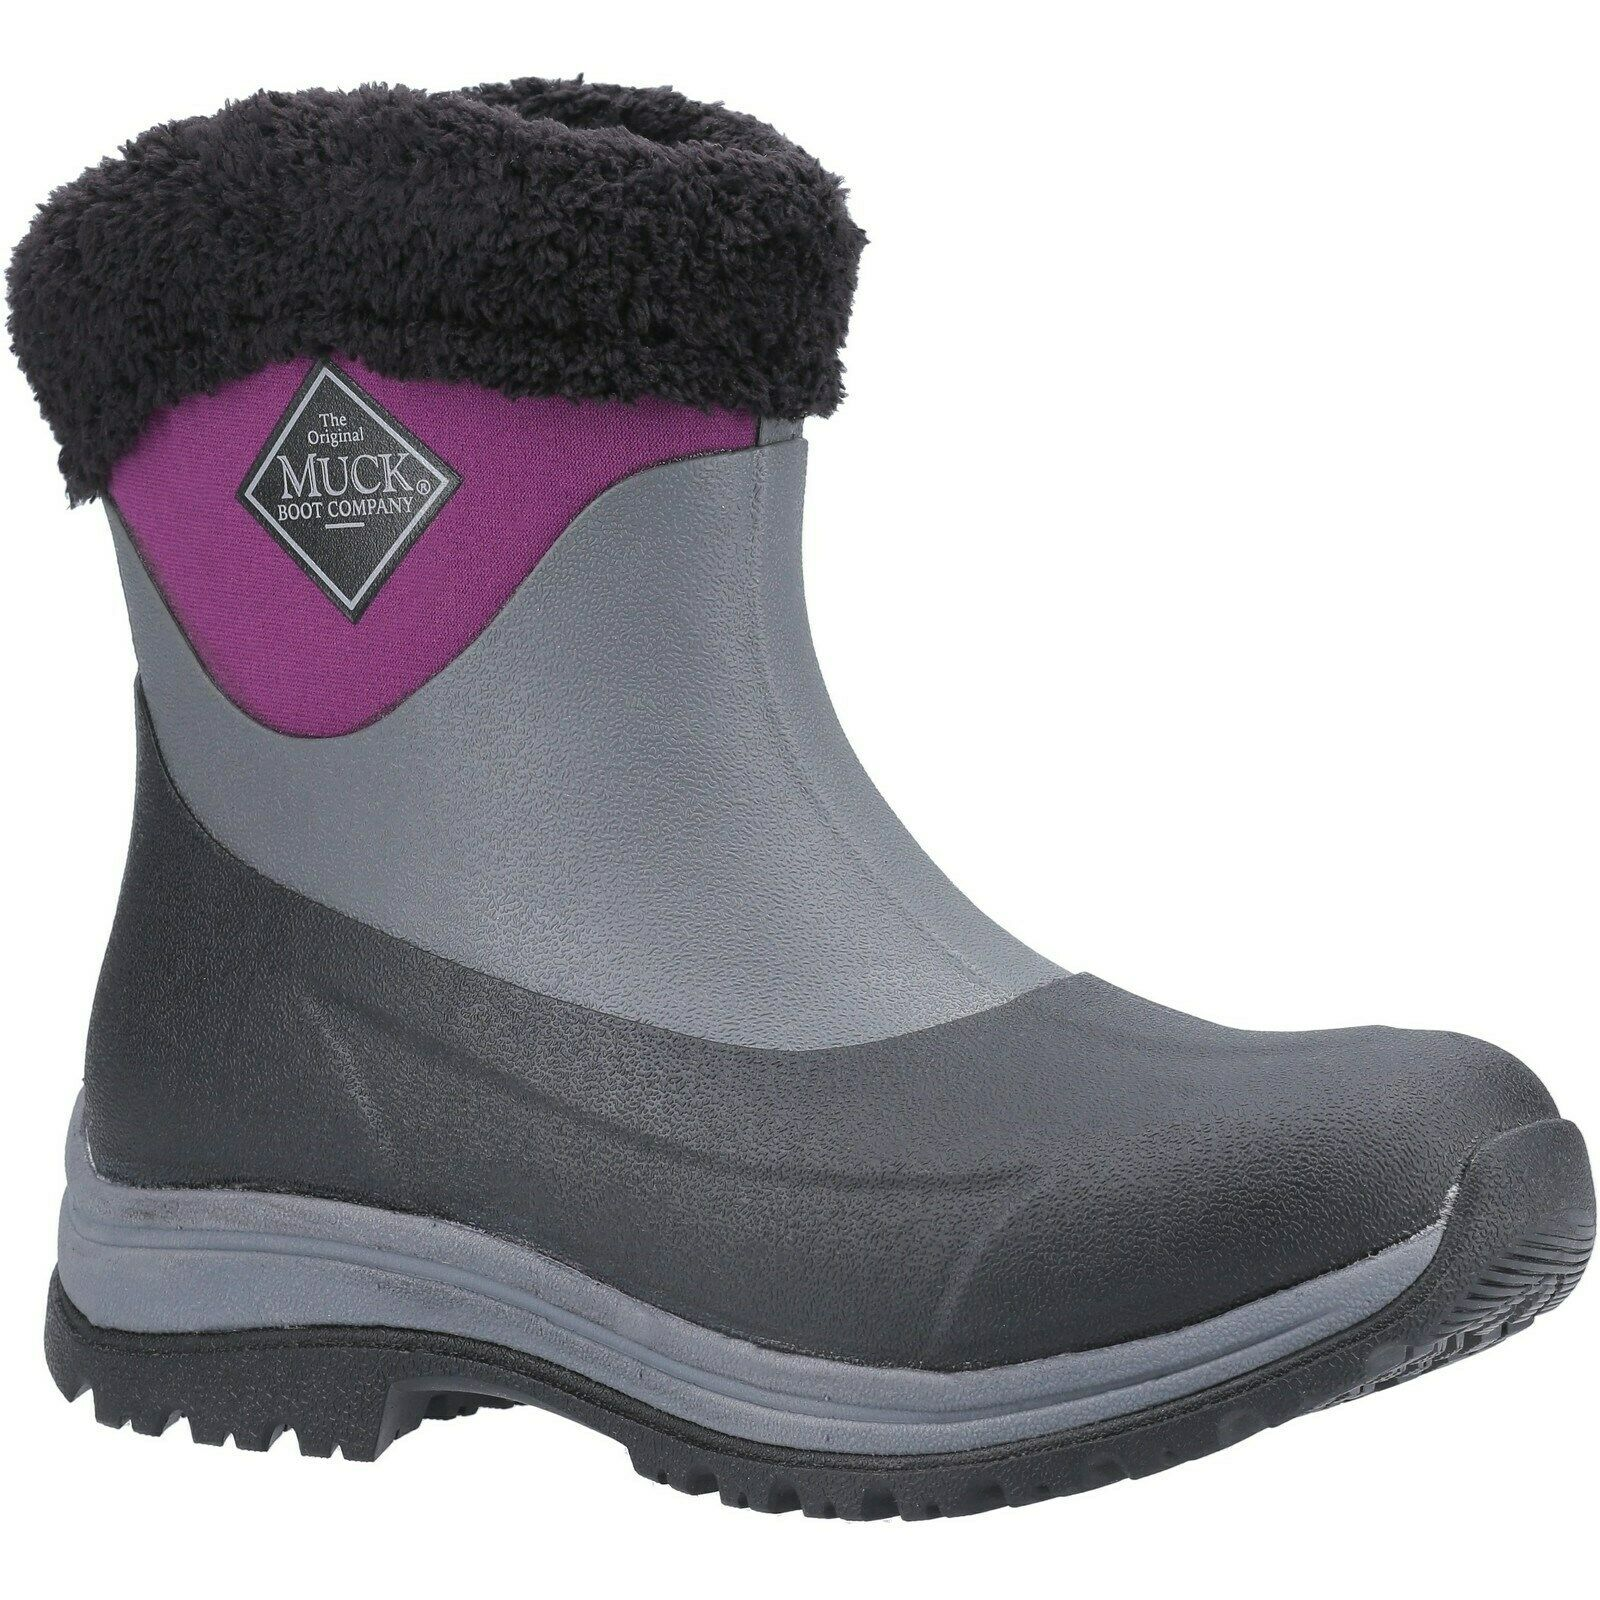 Muck Boots Arctic Apres Winter boots Slip-On Casual Short Wo